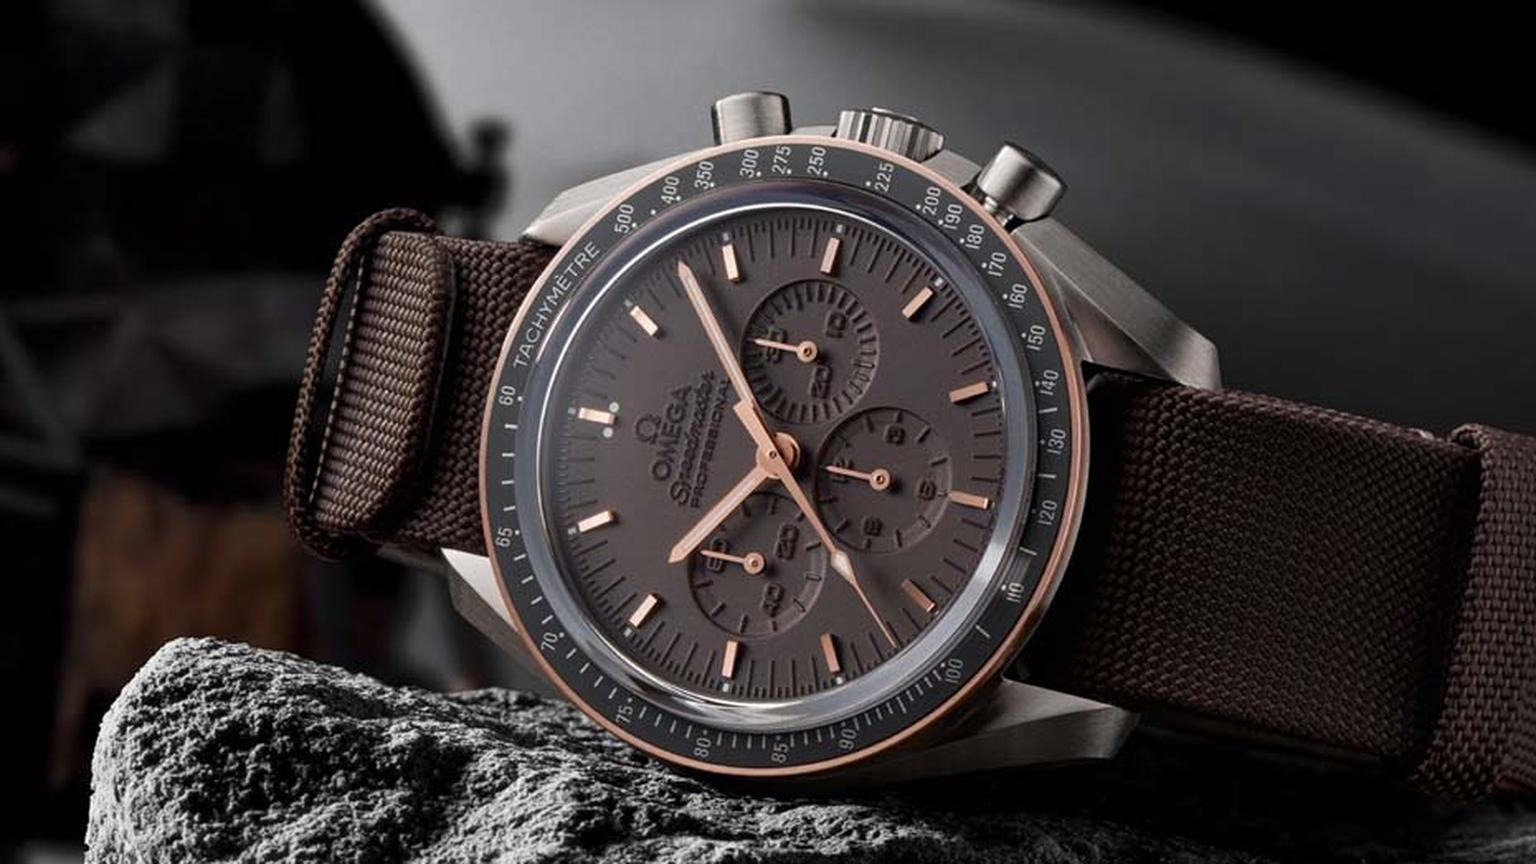 The new Omega Speedmaster Apollo 11 45th Anniversary watch features a dark-grey grade-2 titanium case, Sedna rose gold tachymeter bezel, laser-treated brown dial and a high-quality brown NATO strap